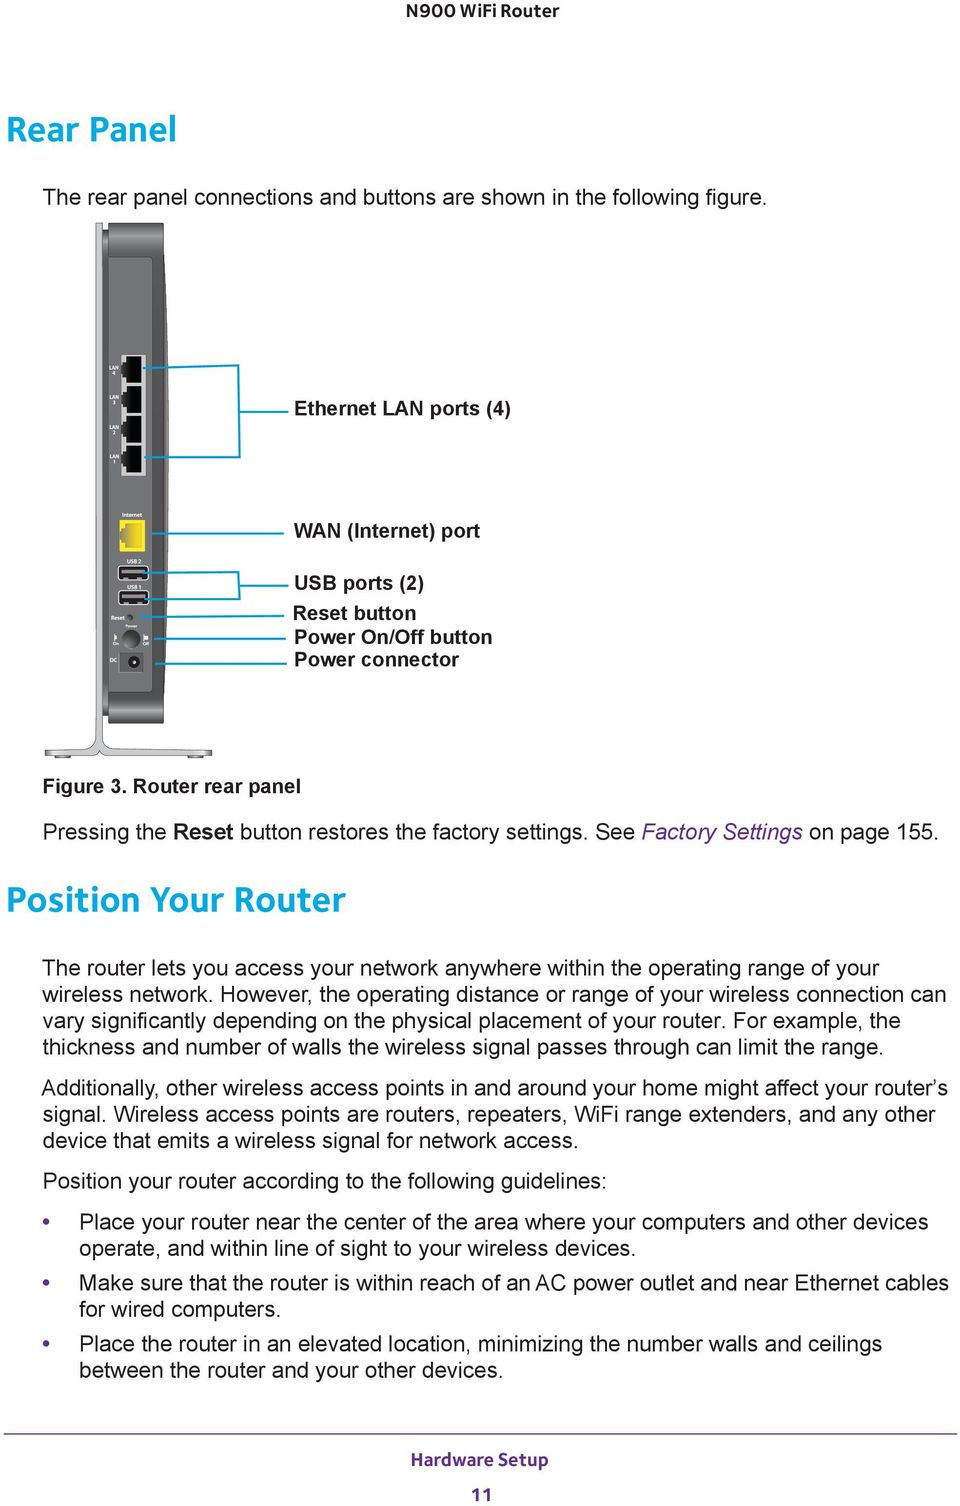 Position Your Router The router lets you access your network anywhere within the operating range of your wireless However, the operating distance or range of your wireless connection can vary